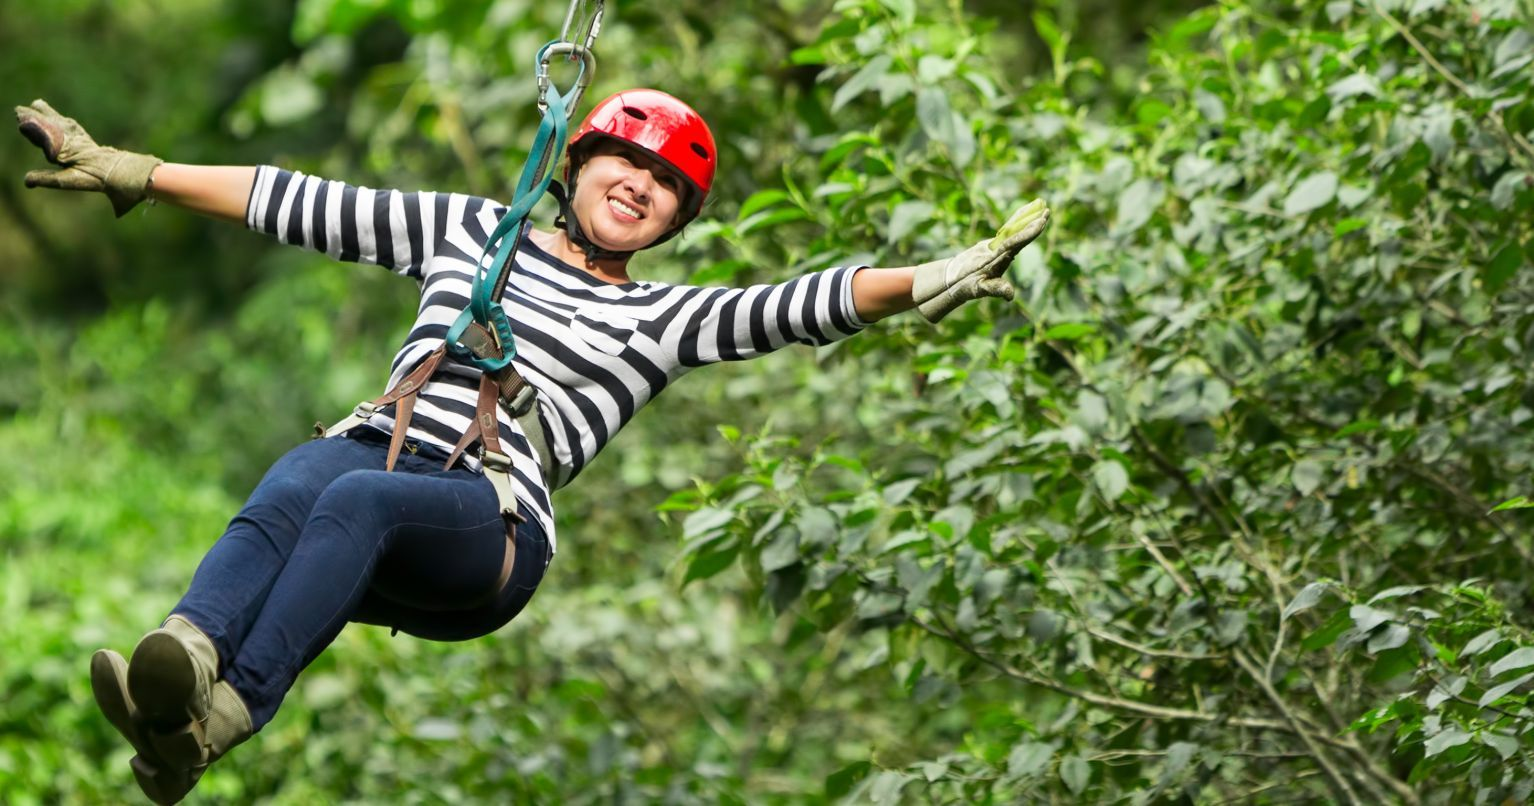 Rocky Mountain Zipline Adventure Denver Experience Gifts